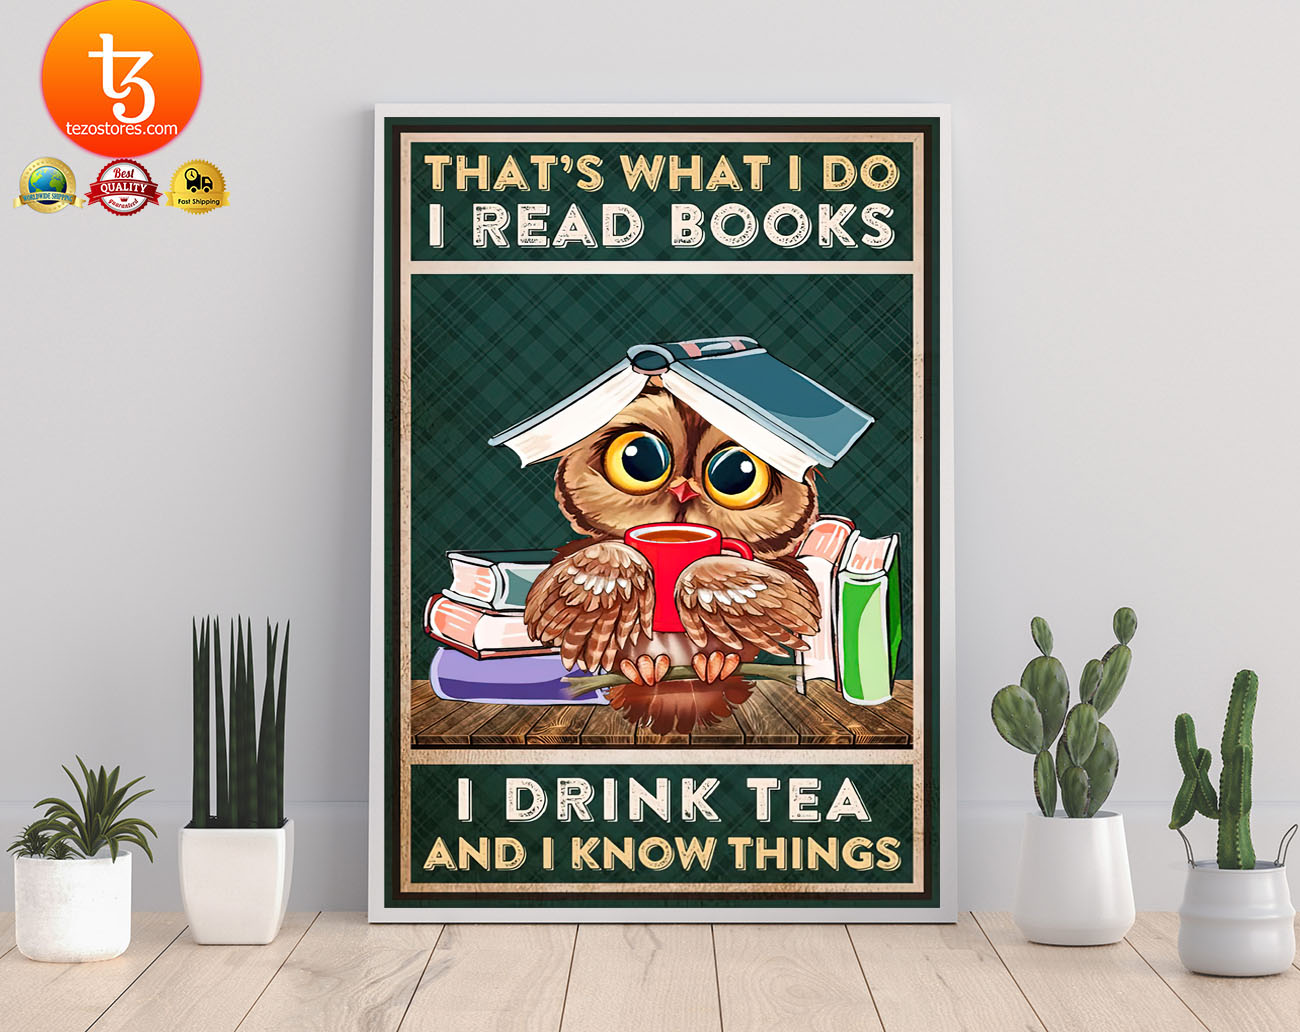 Thats what I do I read books I drink tea and I know things poster 21